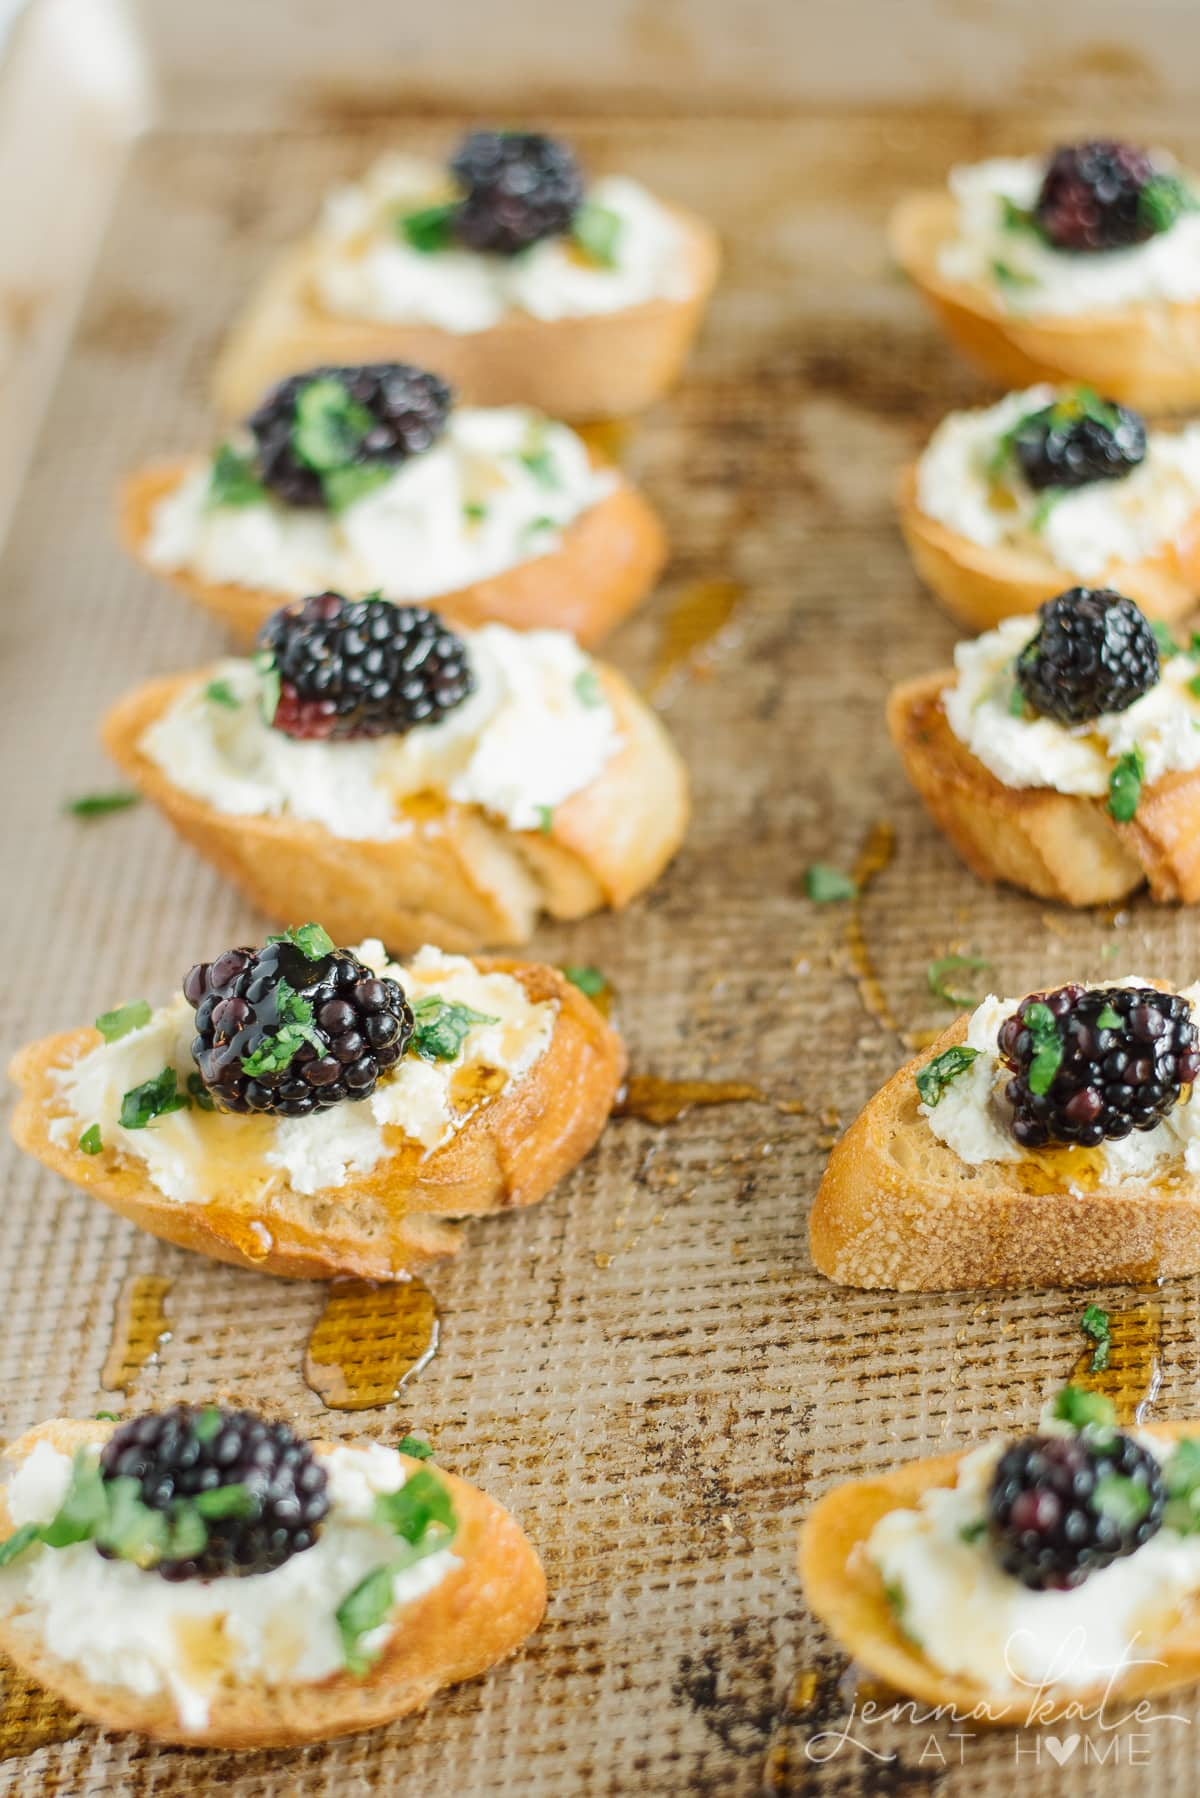 Honey drizzled over crostini appetizers